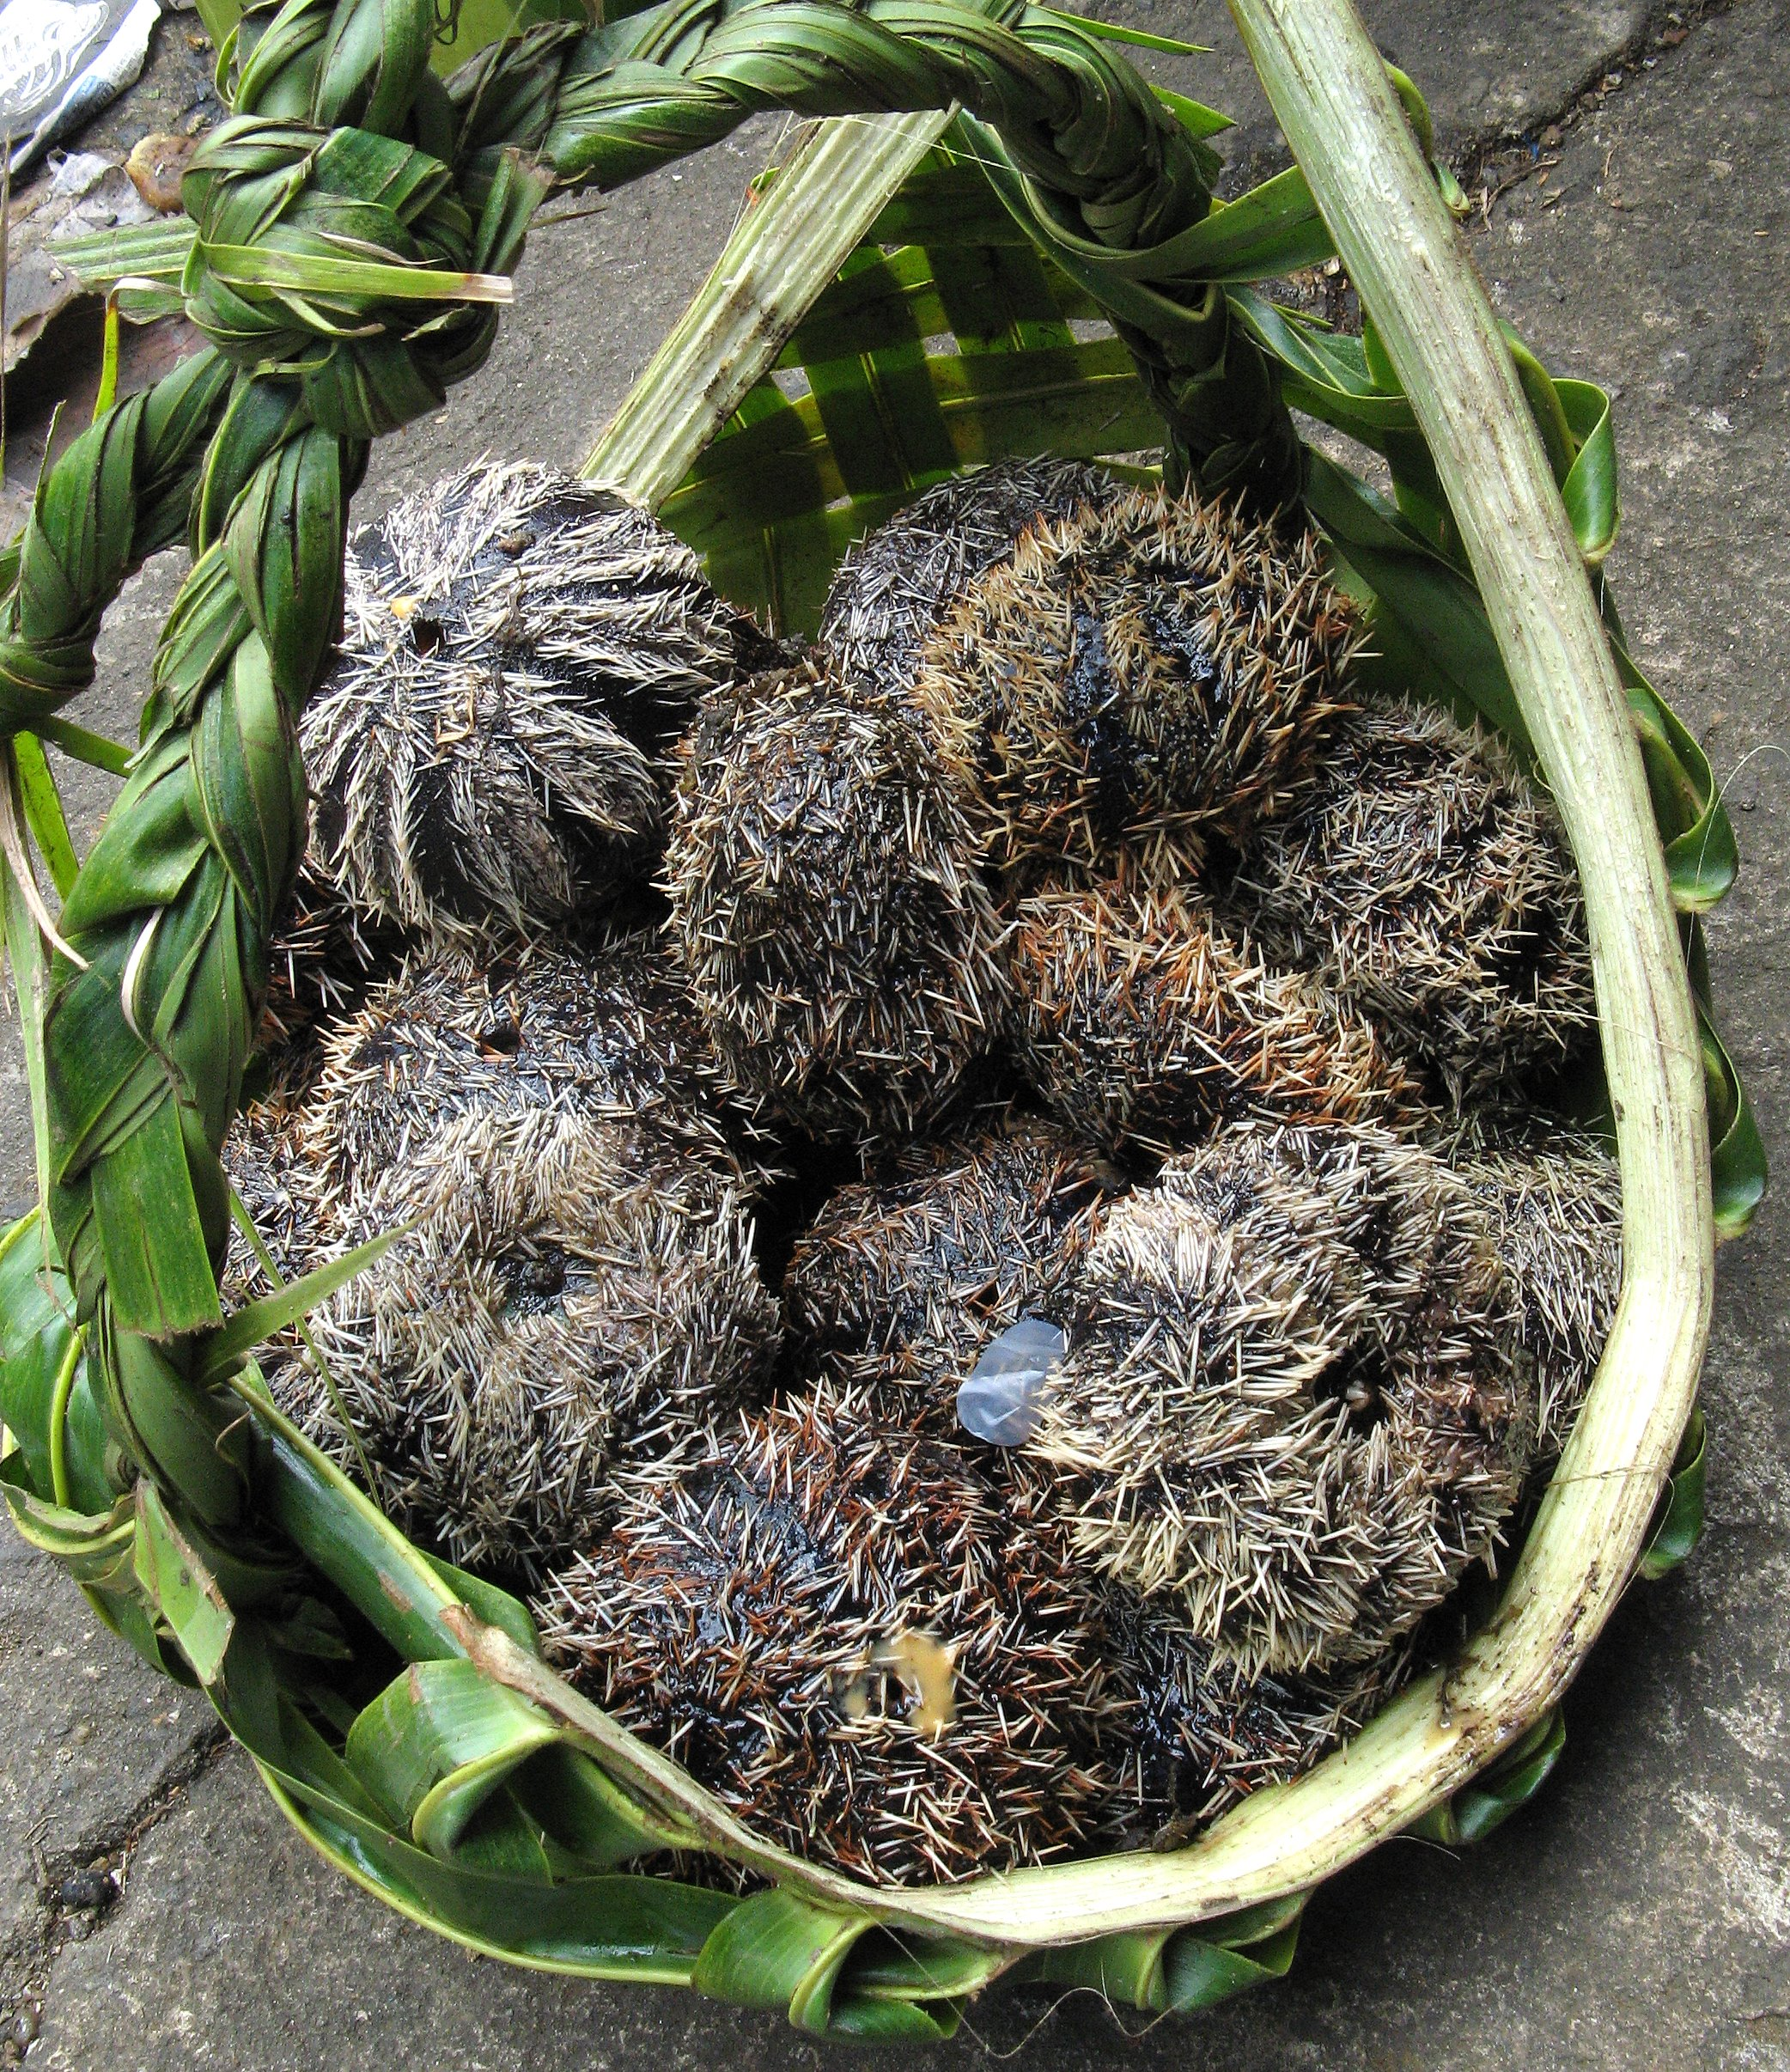 Harvested sea urchins sold in the market